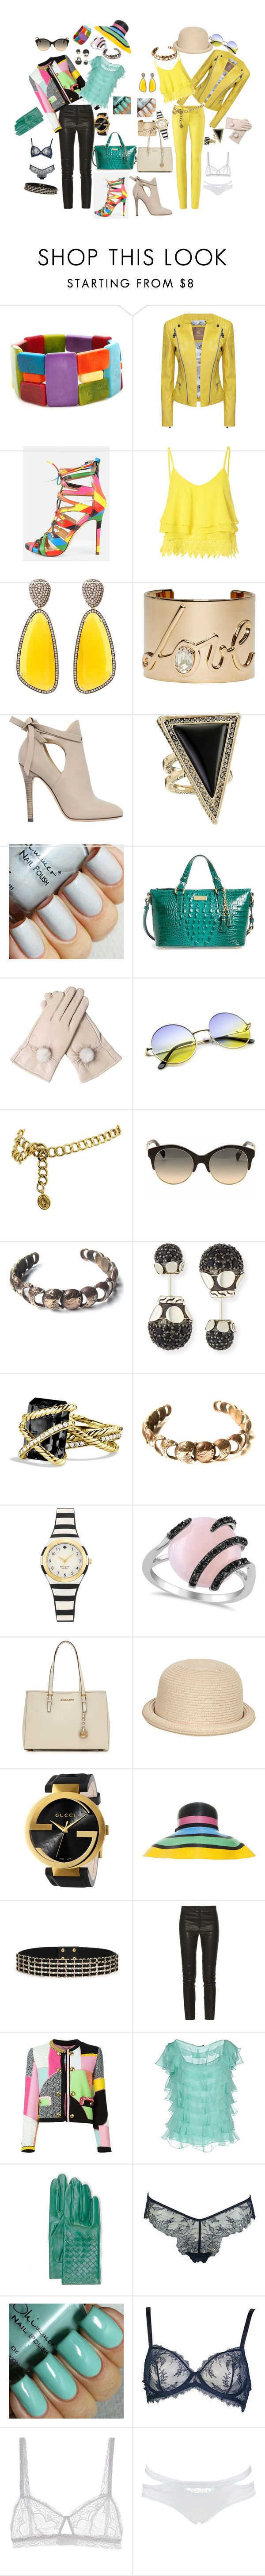 """""""29"""" by kuropirate on Polyvore featuring Encanto, Glamorous, Christina Debs, Lanvin, Jimmy Choo, House of Harlow 1960, Brahmin, Chanel, Emilio Pucci and Mary Gallagher"""